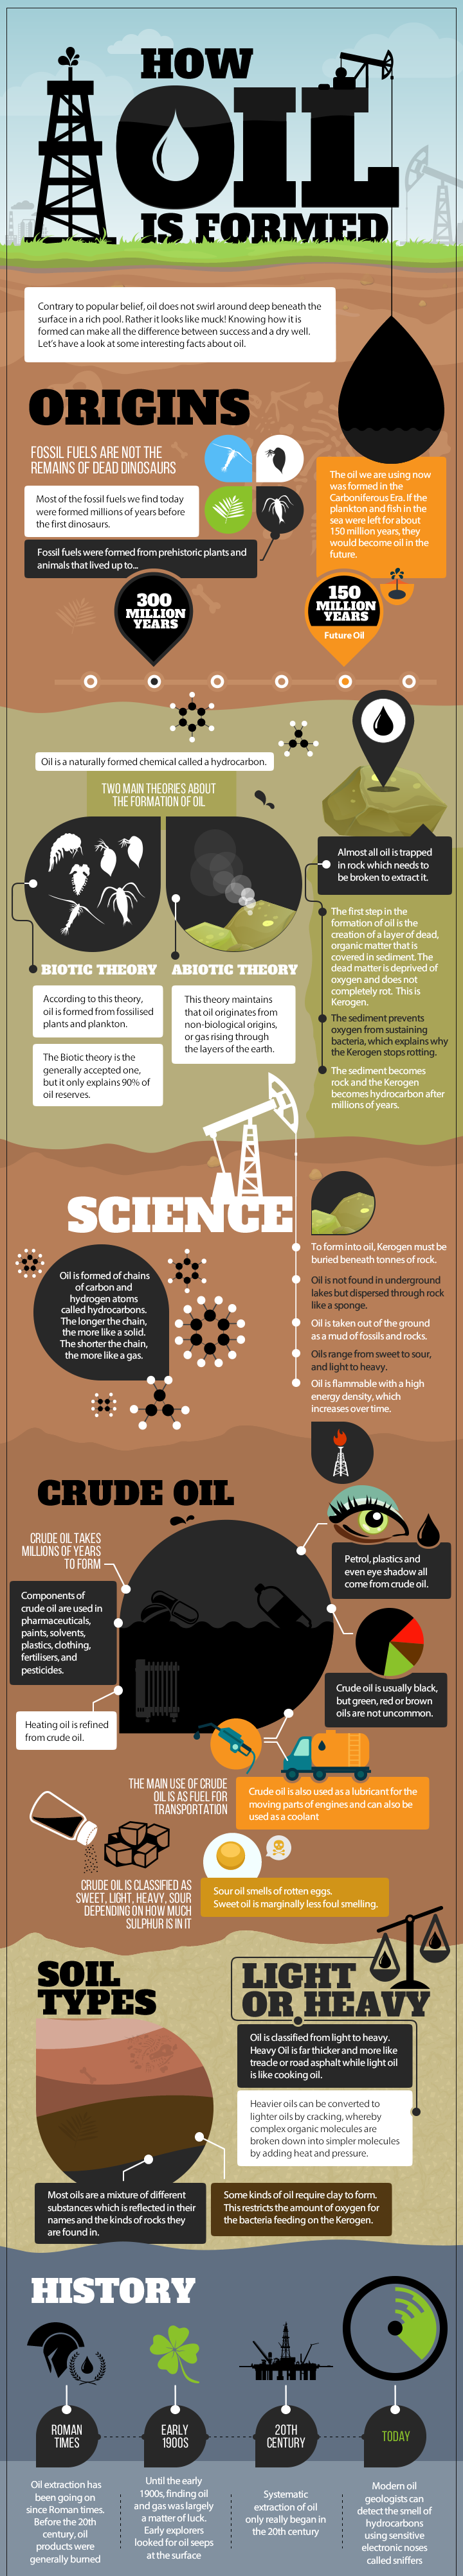 TAG Oil: How oil is formed